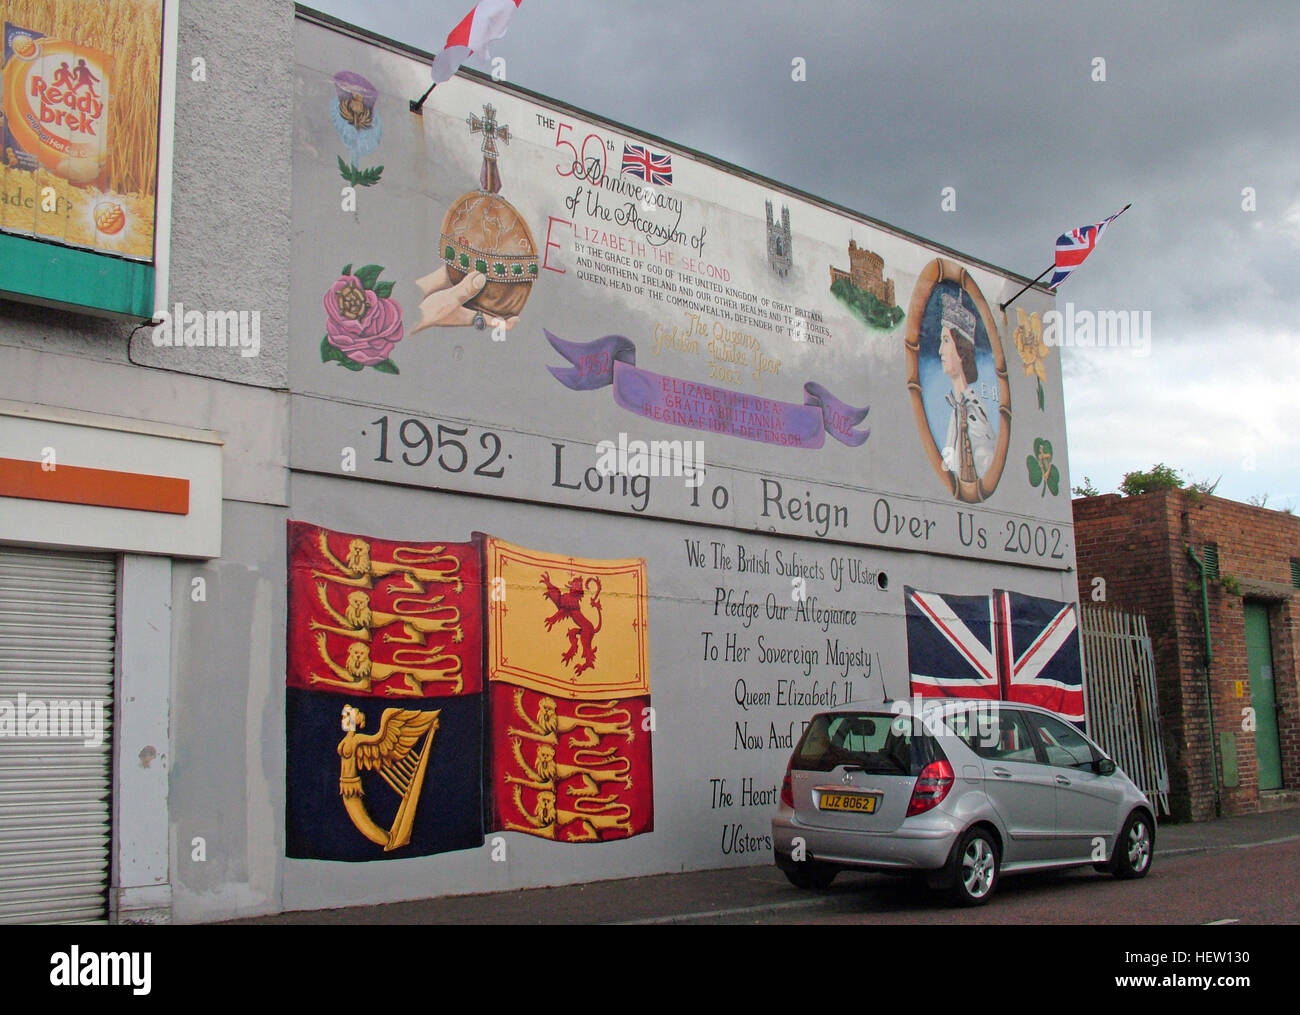 Unionist,British,Shankil,rd,painting,art,artist,martyr,fighter,para,paramilitary,soldier,wall,gable,end,gable end,community,protestant,Shankill Road Mural,West,West Belfast,NI,Northern Ireland,1952,Queen,Long To Rein Over Us,union,flag,union flag,harp,crest,British Crest,car,GoTonySmith,@HotpixUK,Tony,Smith,UK,GB,Great,Britain,United,Kingdom,Irish,British,Ireland,problem,with,problem with,issue with,NI,Northern,Northern Ireland,Belfast,City,Centre,Art,Artists,the,troubles,The Troubles,Good Friday Agreement,Peace,honour,painting,wall,walls,tribute,unionism,Fight,Justice,West,Beal,feirste,martyrs,social,tour,tourism,tourists,urban,six,counties,6,backdrop,county,Antrim,DUP,democratic Unionist,red hand,of Ulster,Red Hand Of Ulster,Shankill,Rd,road,Shankill Road,streets of Belfast,protestant,religion,intolerance,prejudice,Buy Pictures of,Buy Images Of,Images of,Stock Images,Tony Smith,United Kingdom,Great Britain,British Isles